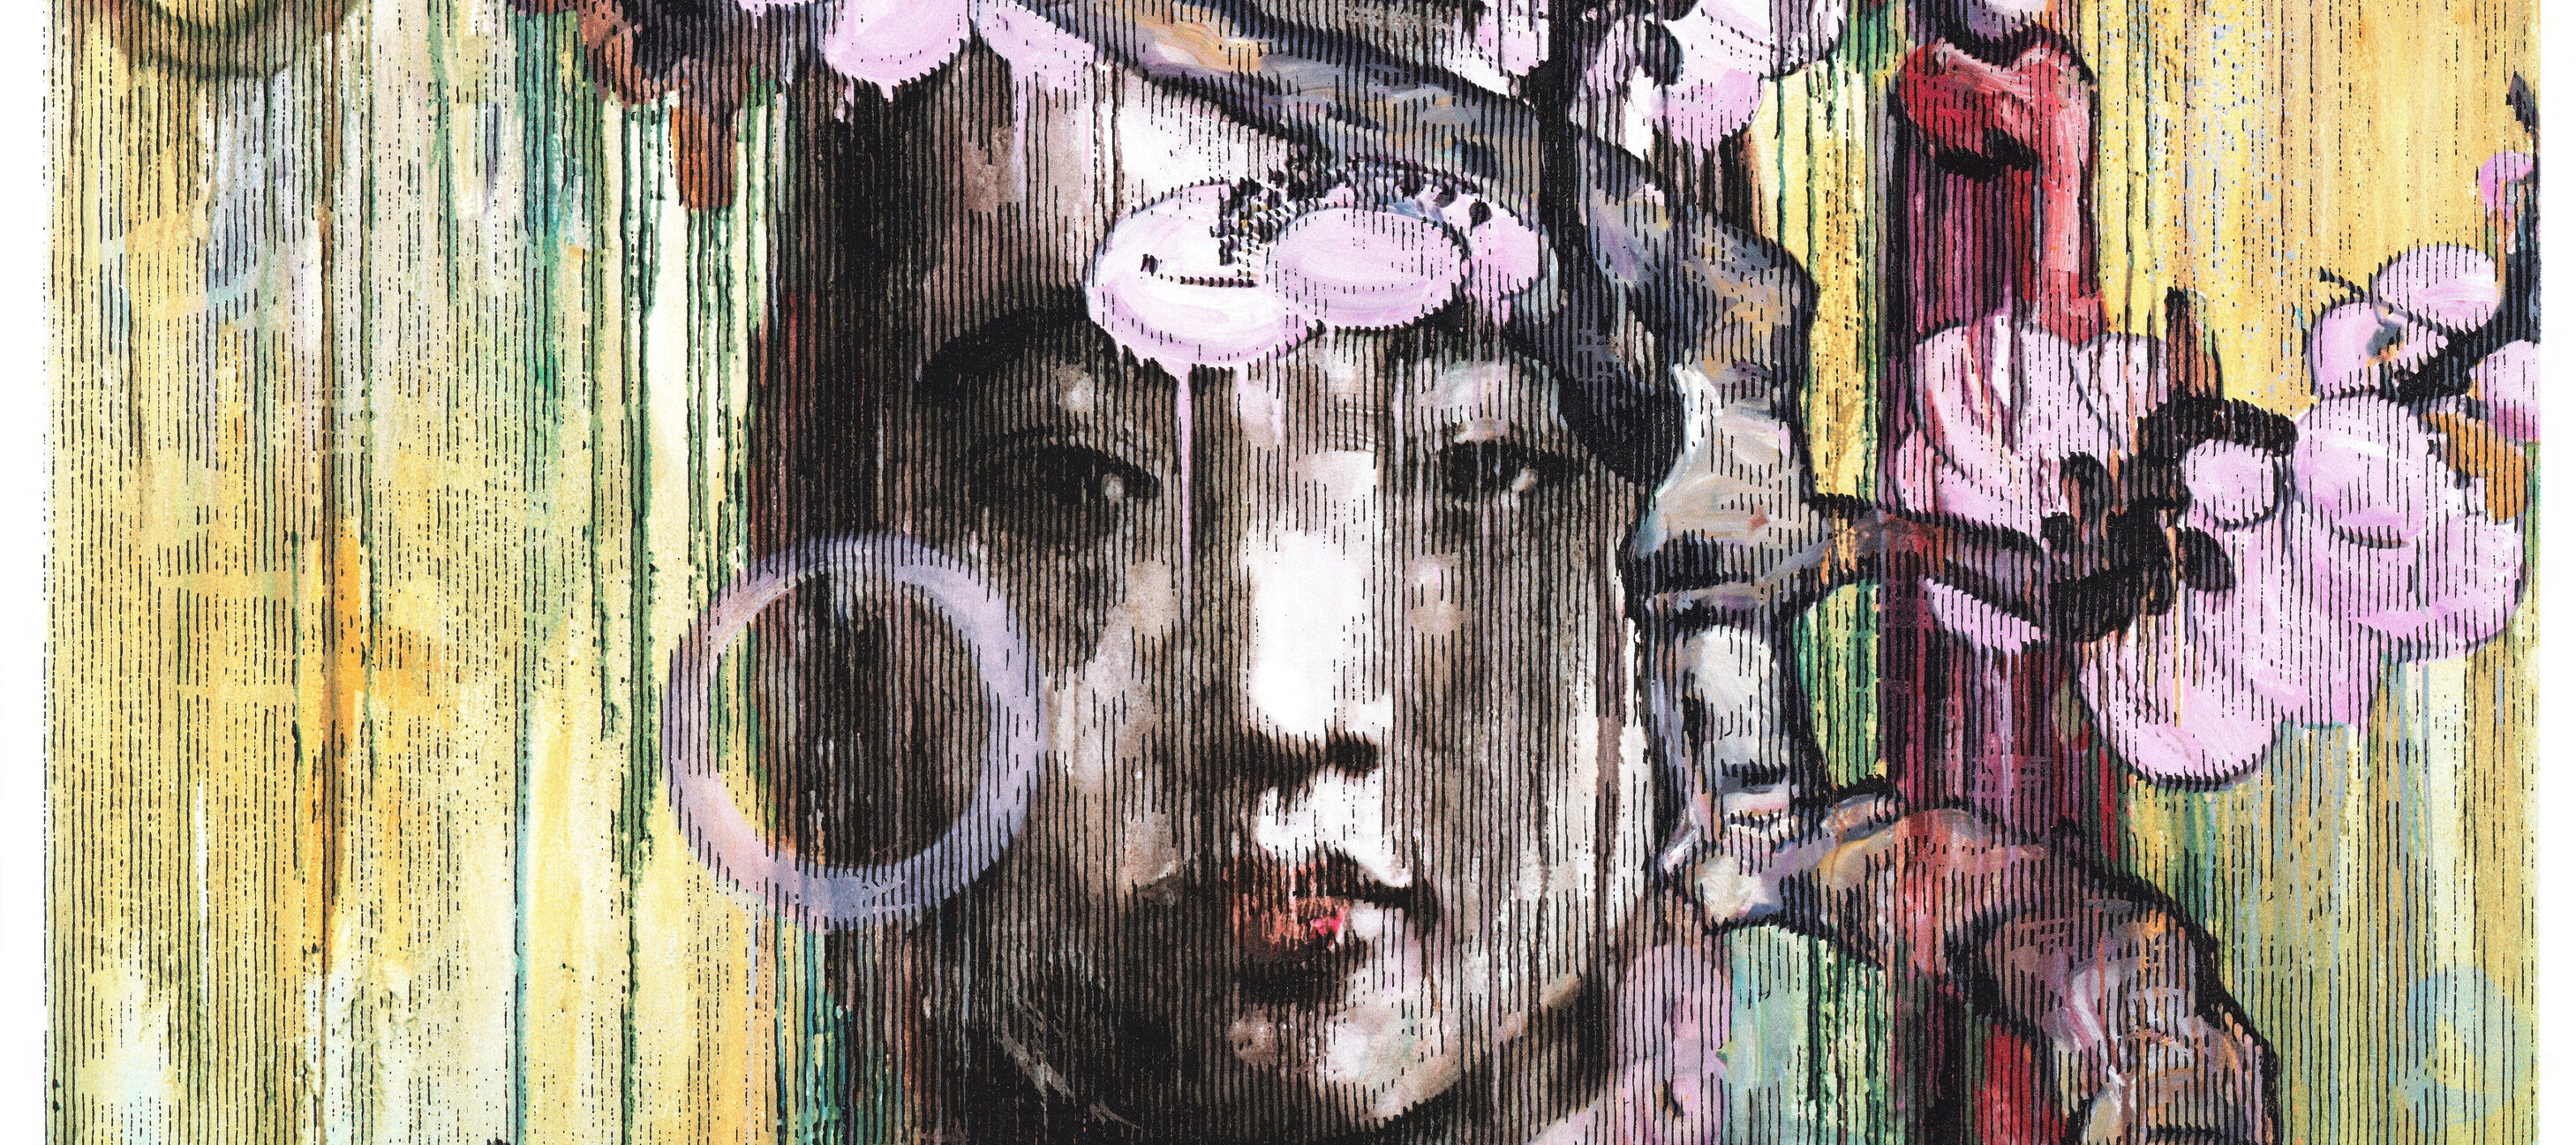 A square painting with layered, dripping textures of a light-skinned Chinese woman with dark hair and red lips seen from the shoulders up. She gazes straightforward at the viewer and wears a traditional Chinese headdress. She is partially obscured by a branch of pink blossoms.